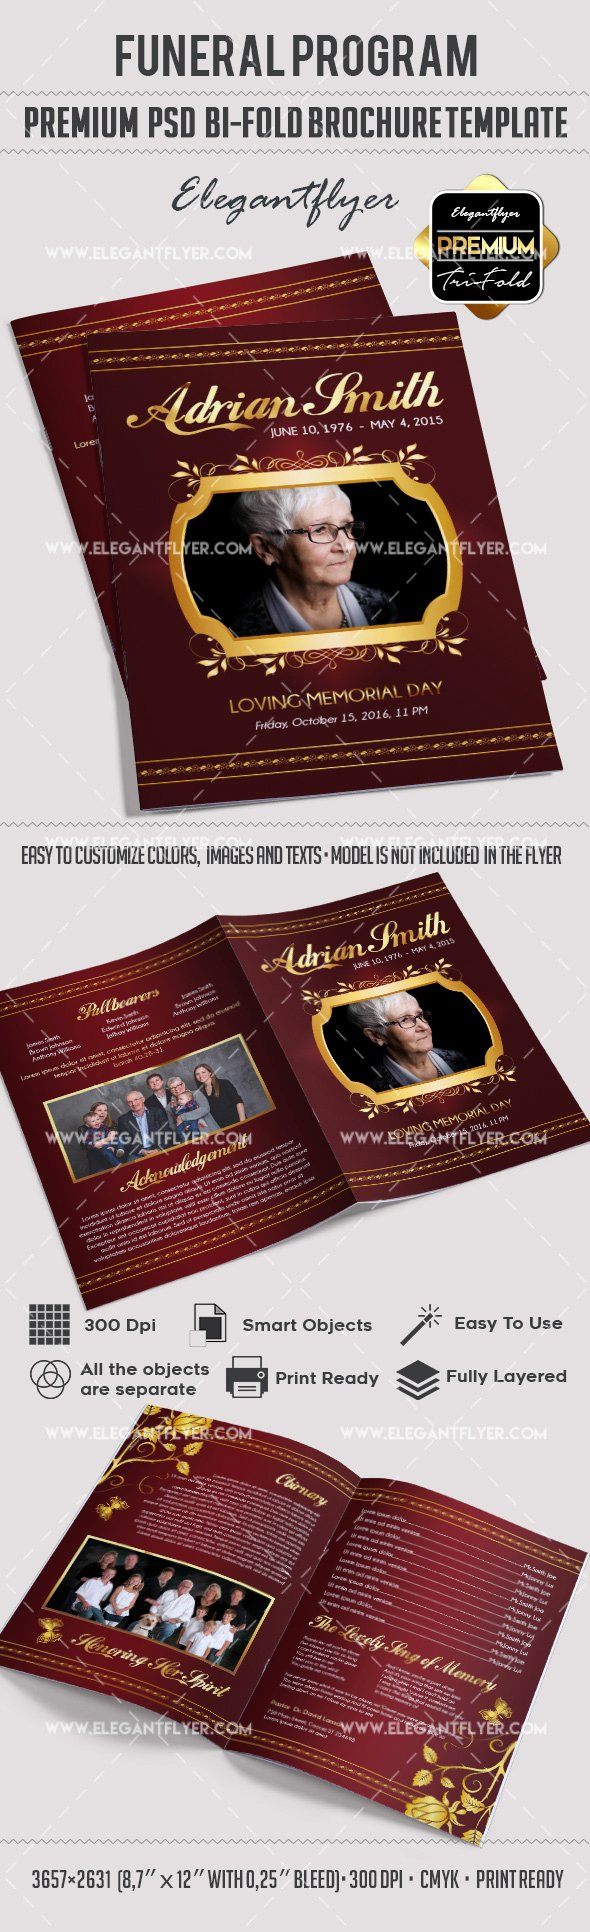 Bi Fold Program Template Elegant Bi Fold Template for Funeral Service Program – by Elegantflyer